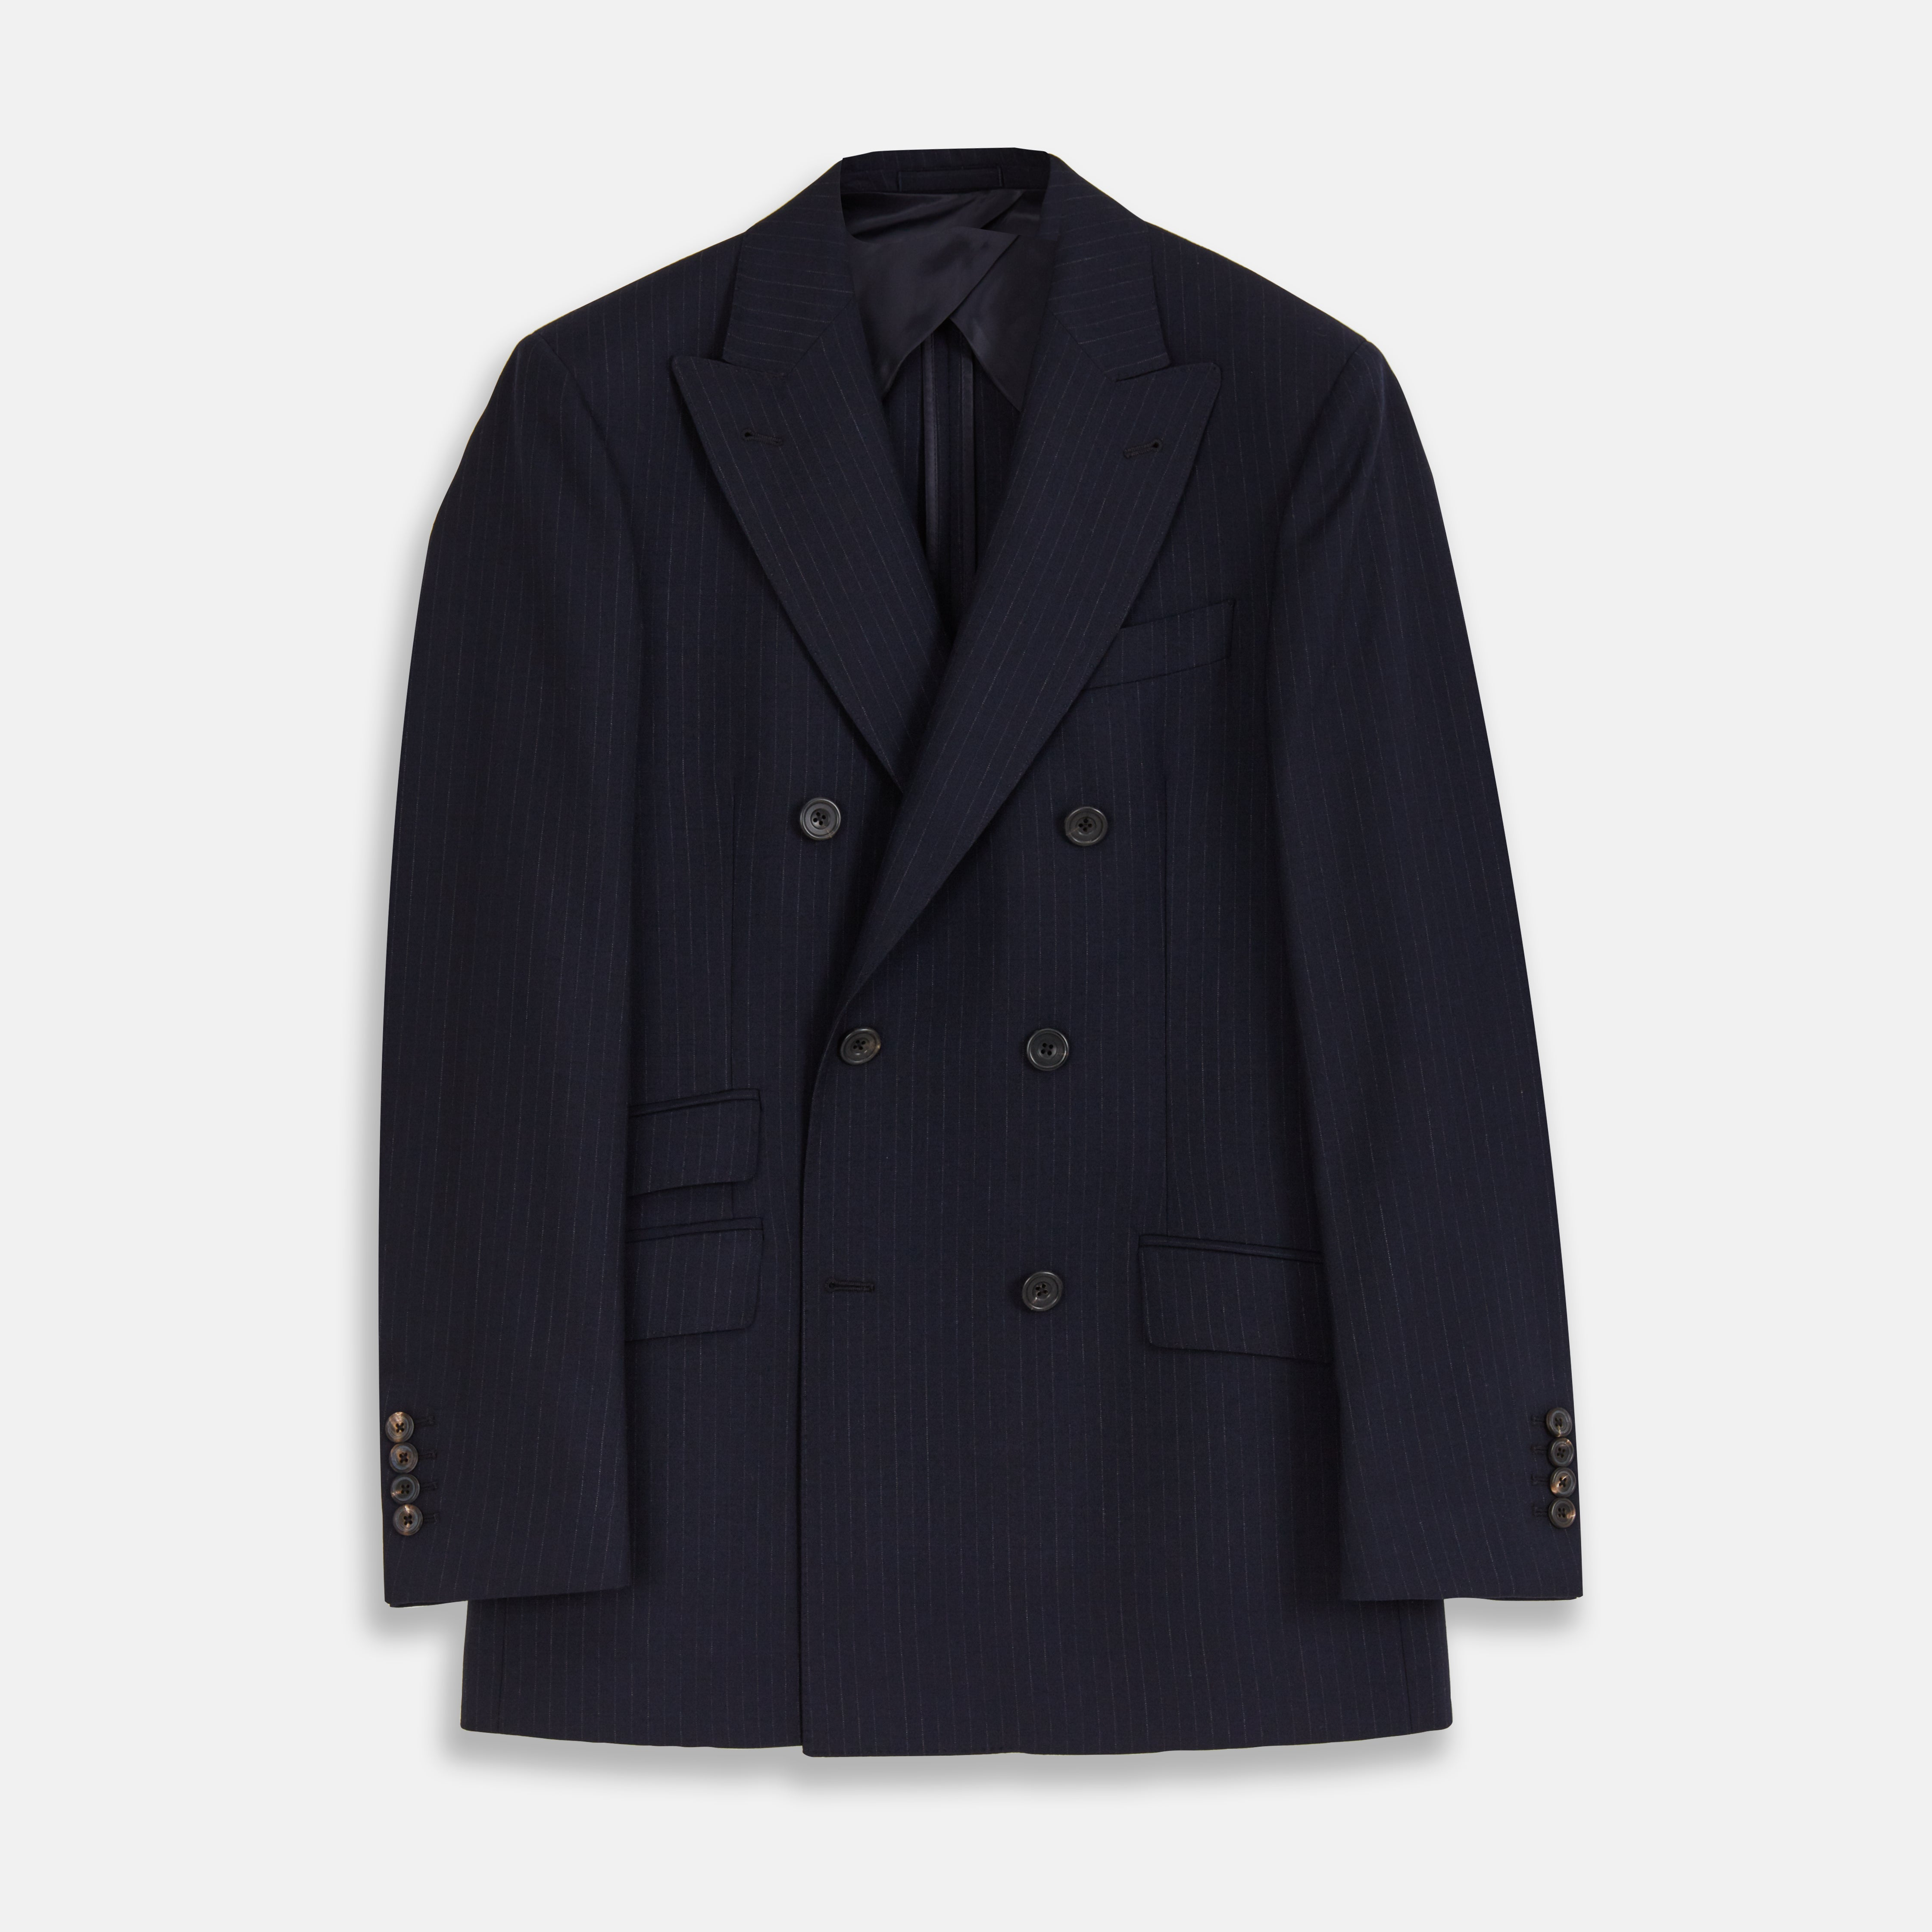 Navy Wool Pinstripe Double-Breasted Jacket